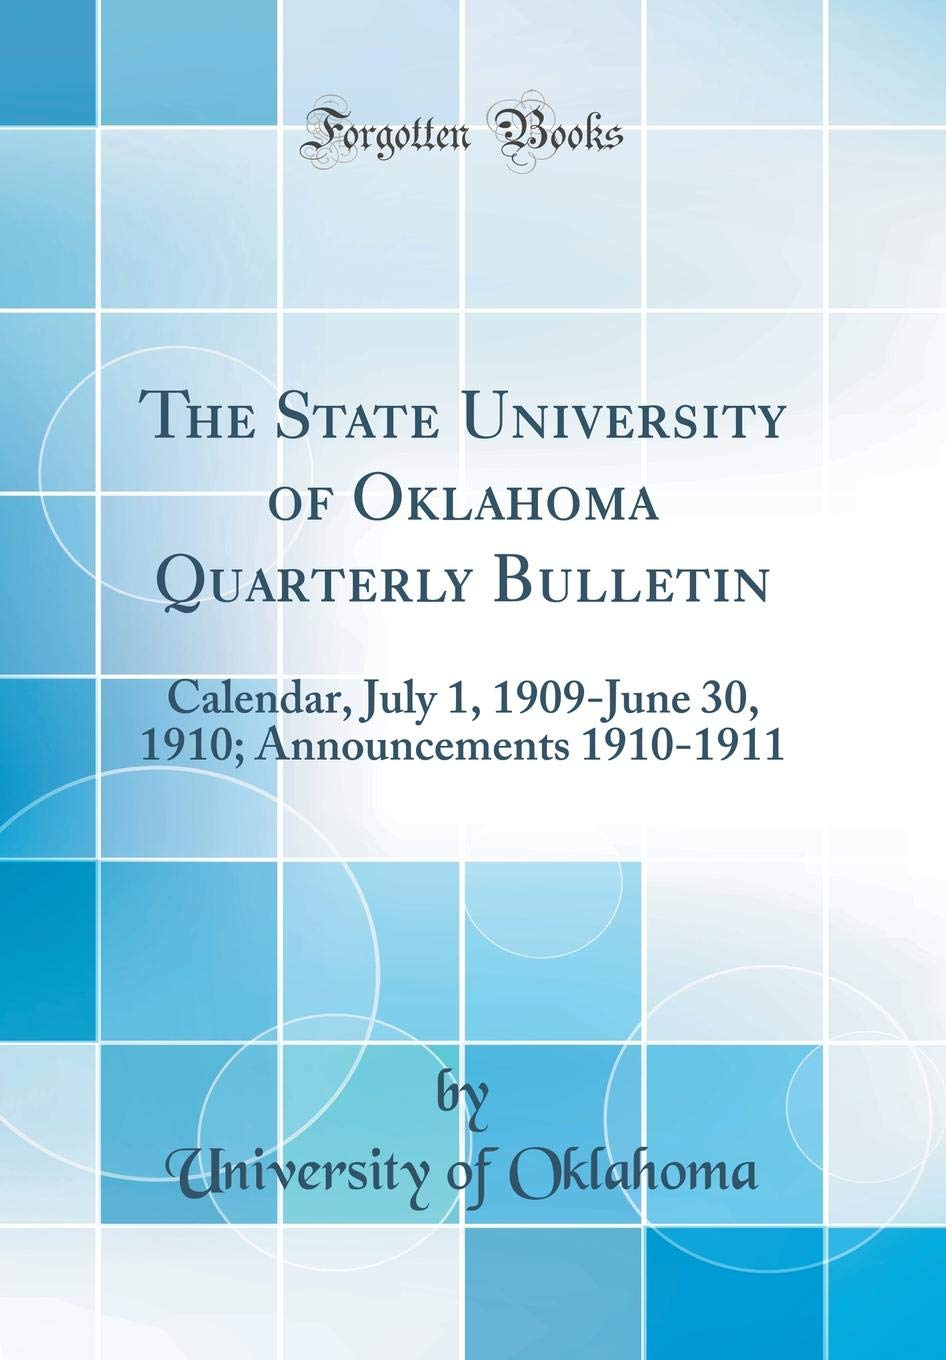 Download The State University of Oklahoma Quarterly Bulletin: Calendar, July 1, 1909-June 30, 1910; Announcements 1910-1911 (Classic Reprint) PDF